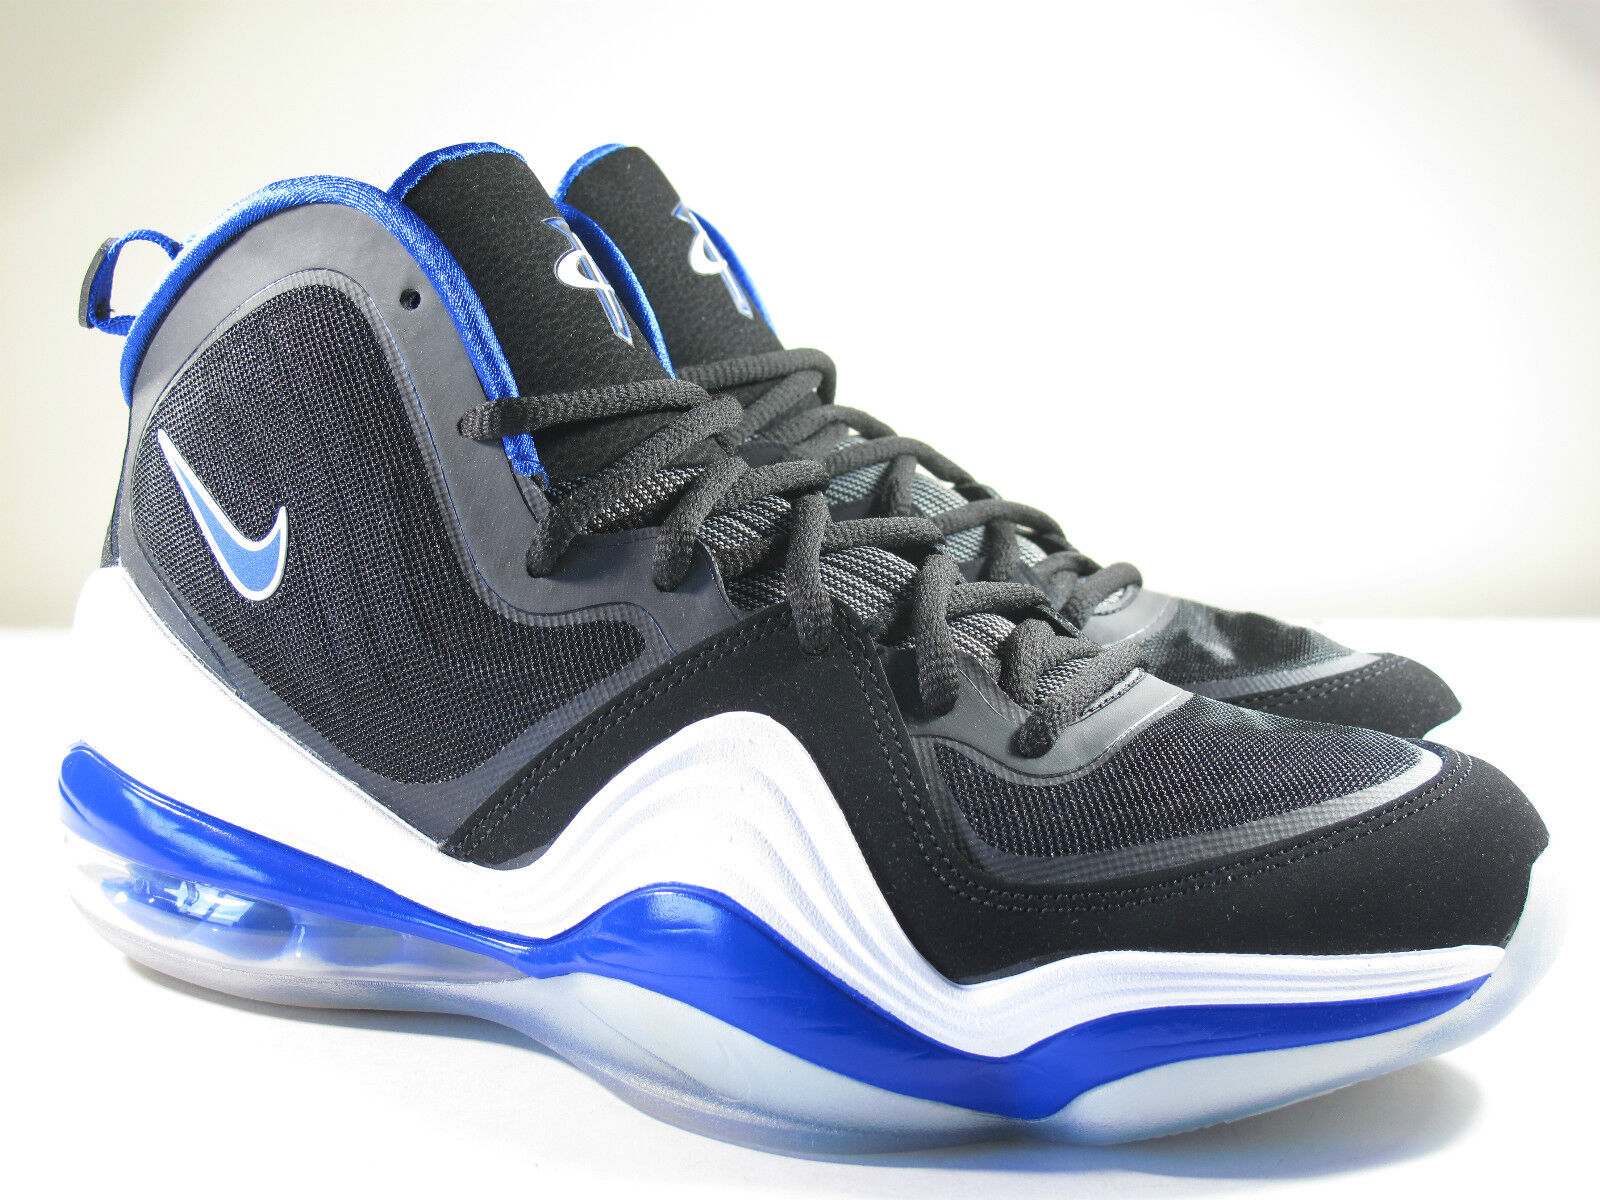 DS NIKE 2012 AIR PENNY V GAME ROYAL 8.5 MAX 180 FORCE ZOOM 95 KIDD RETRO OLYMPIC